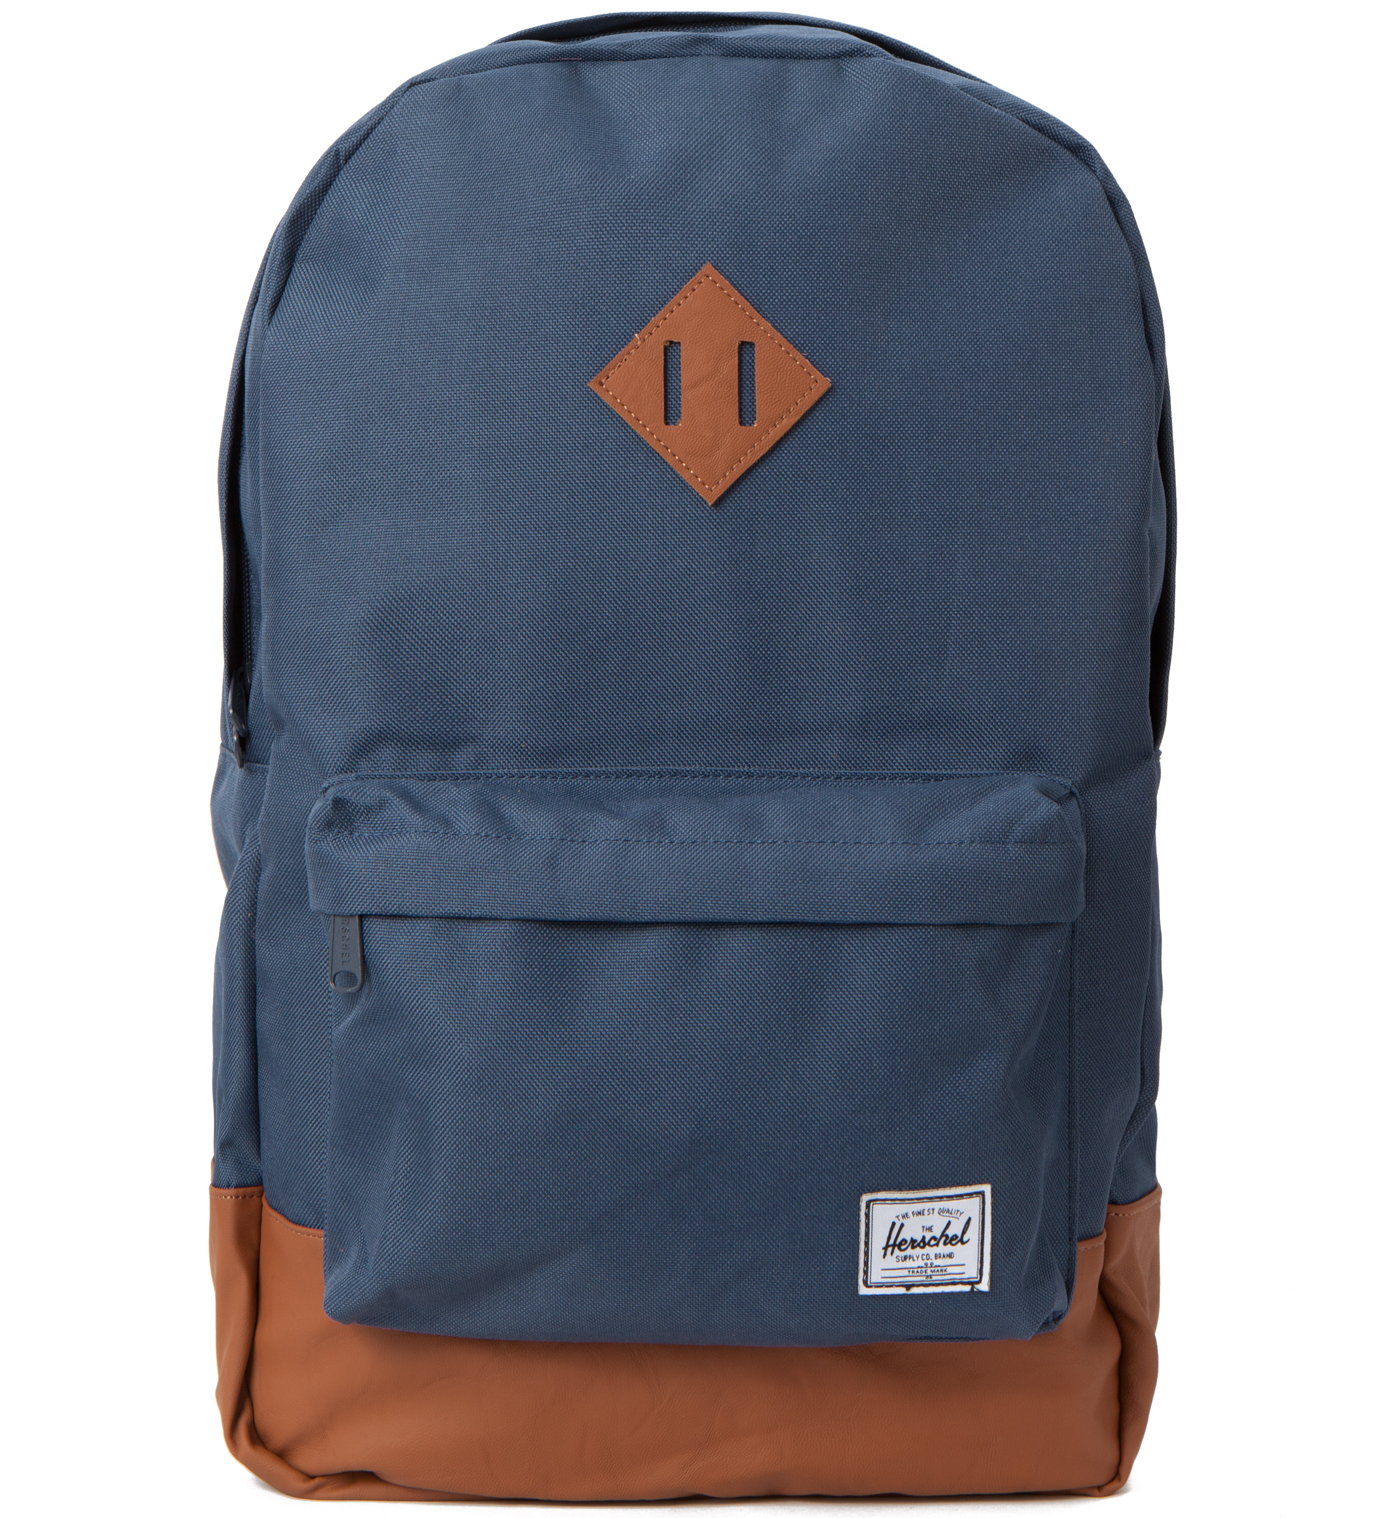 Herschel Supply Co. Navy/Tan Heritage Backpack